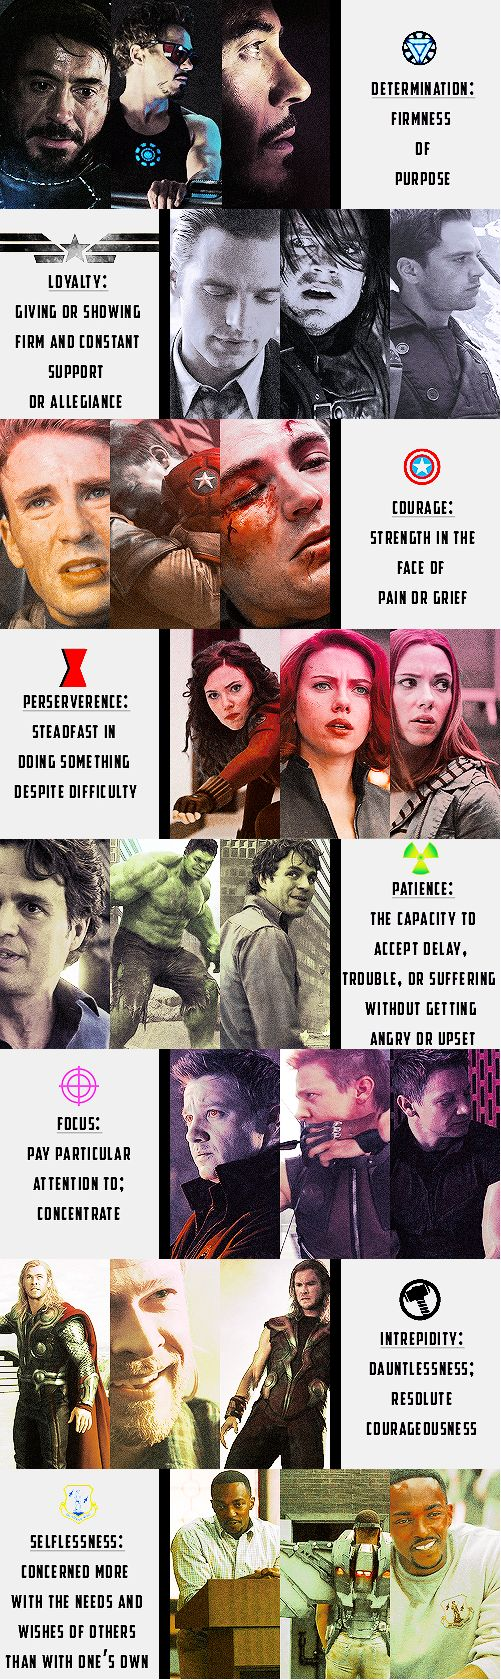 Qualities of a Hero, Avengers style. I try to explain this to people who say the idea of superhero comics is stupid. They arent just pretty boys in fitted suits. THEY STAND FOR SOMETHING.